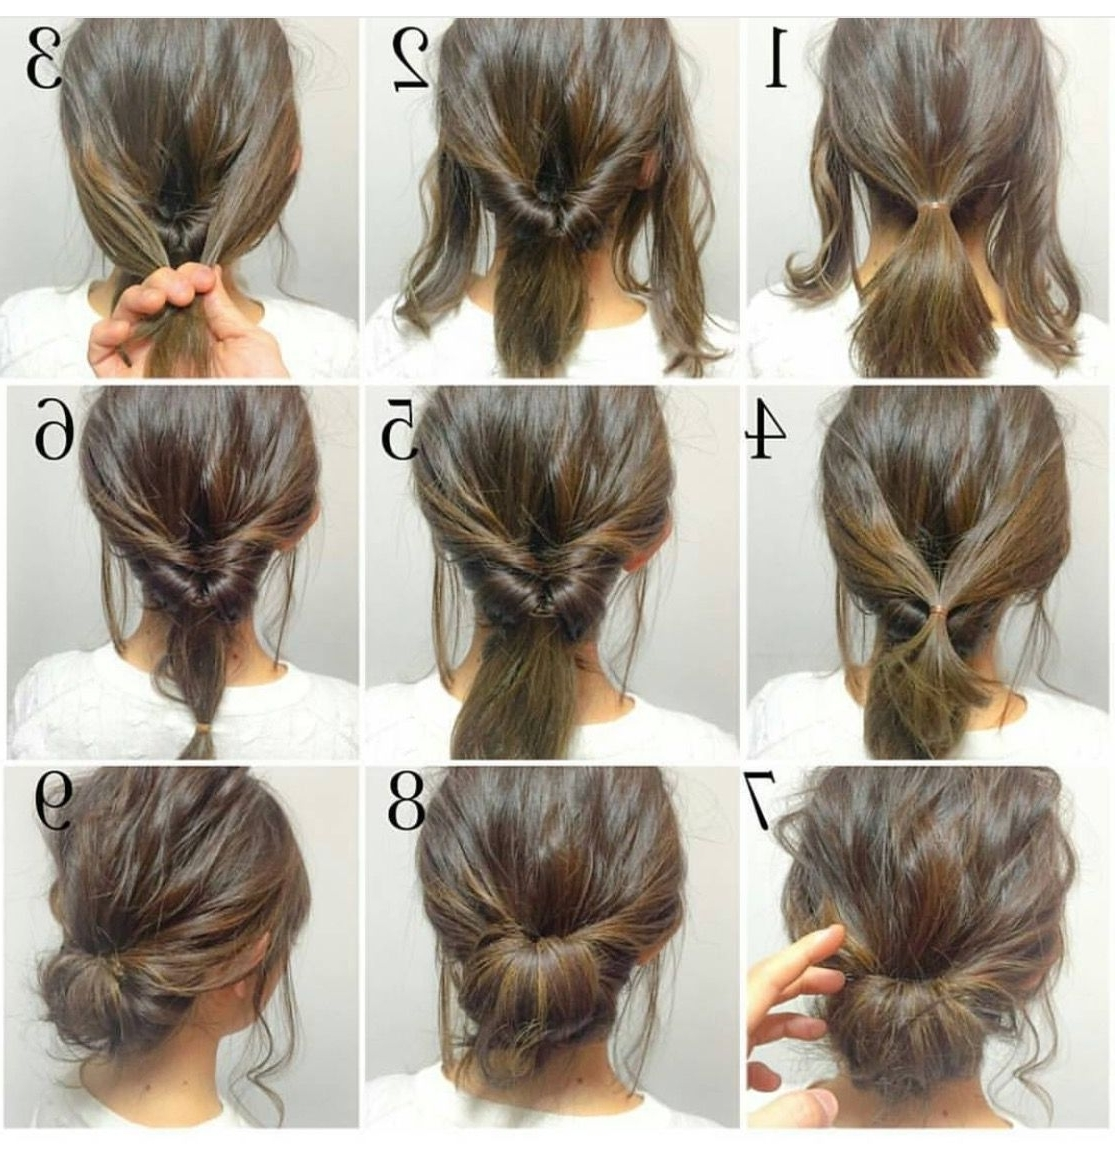 4 Messy Updos For Long Hair | Hairz | Pinterest | Updos, Hair Style Within Long Hair Easy Updo Hairstyles (View 6 of 15)